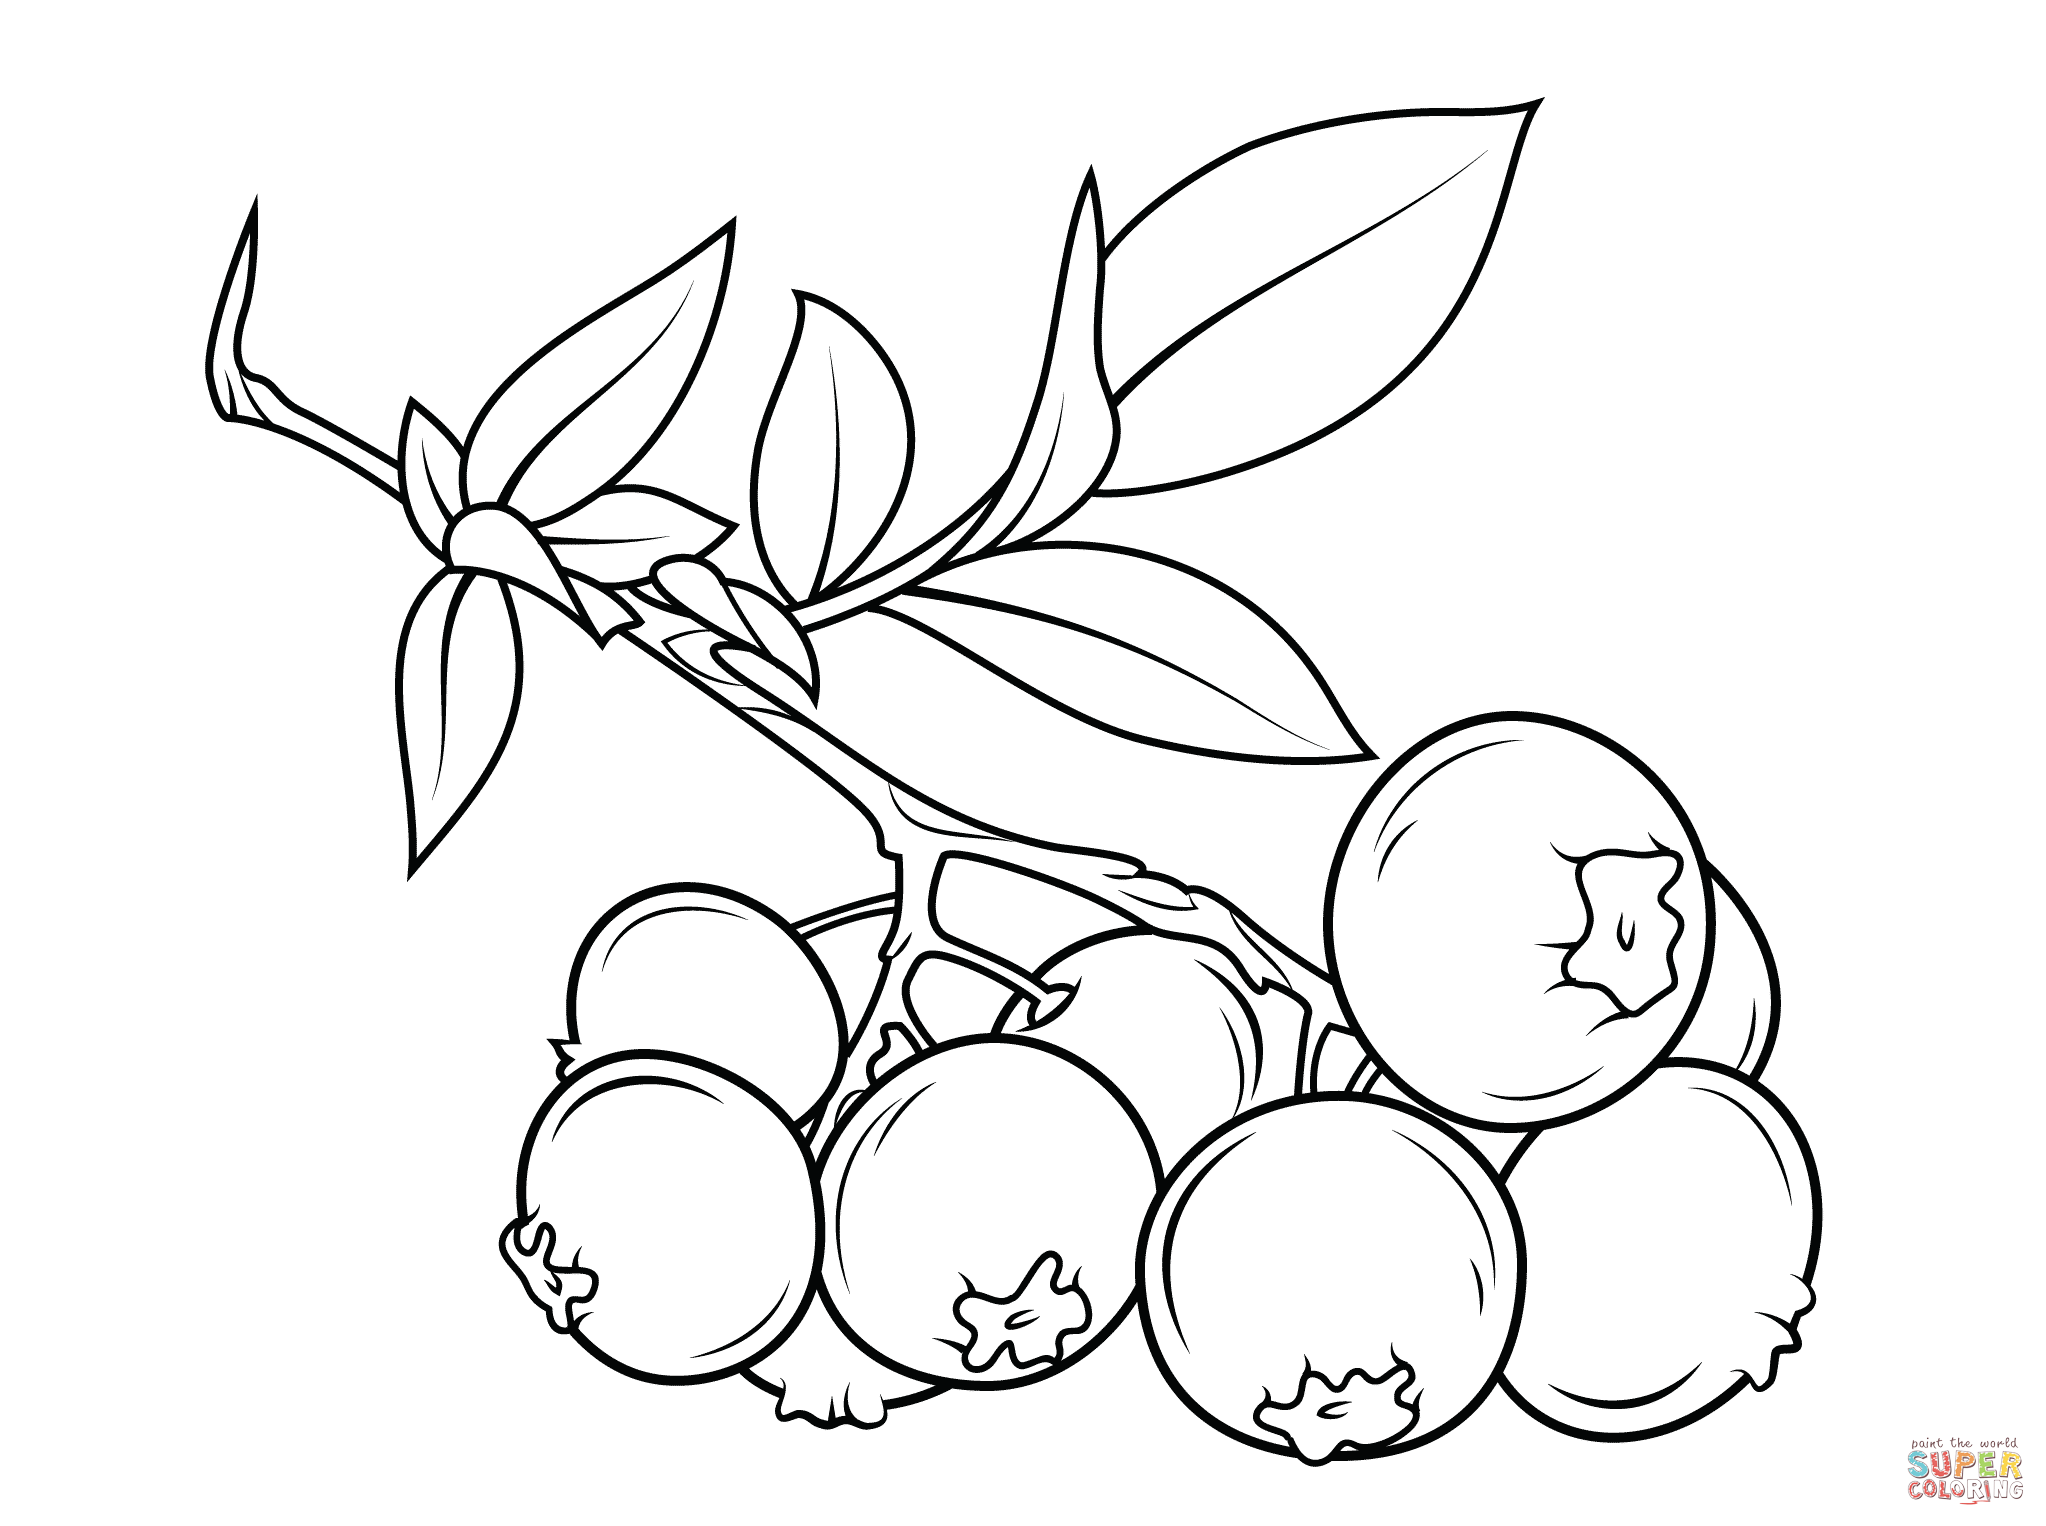 Blueberries clipart outline. Blueberry branch super coloring